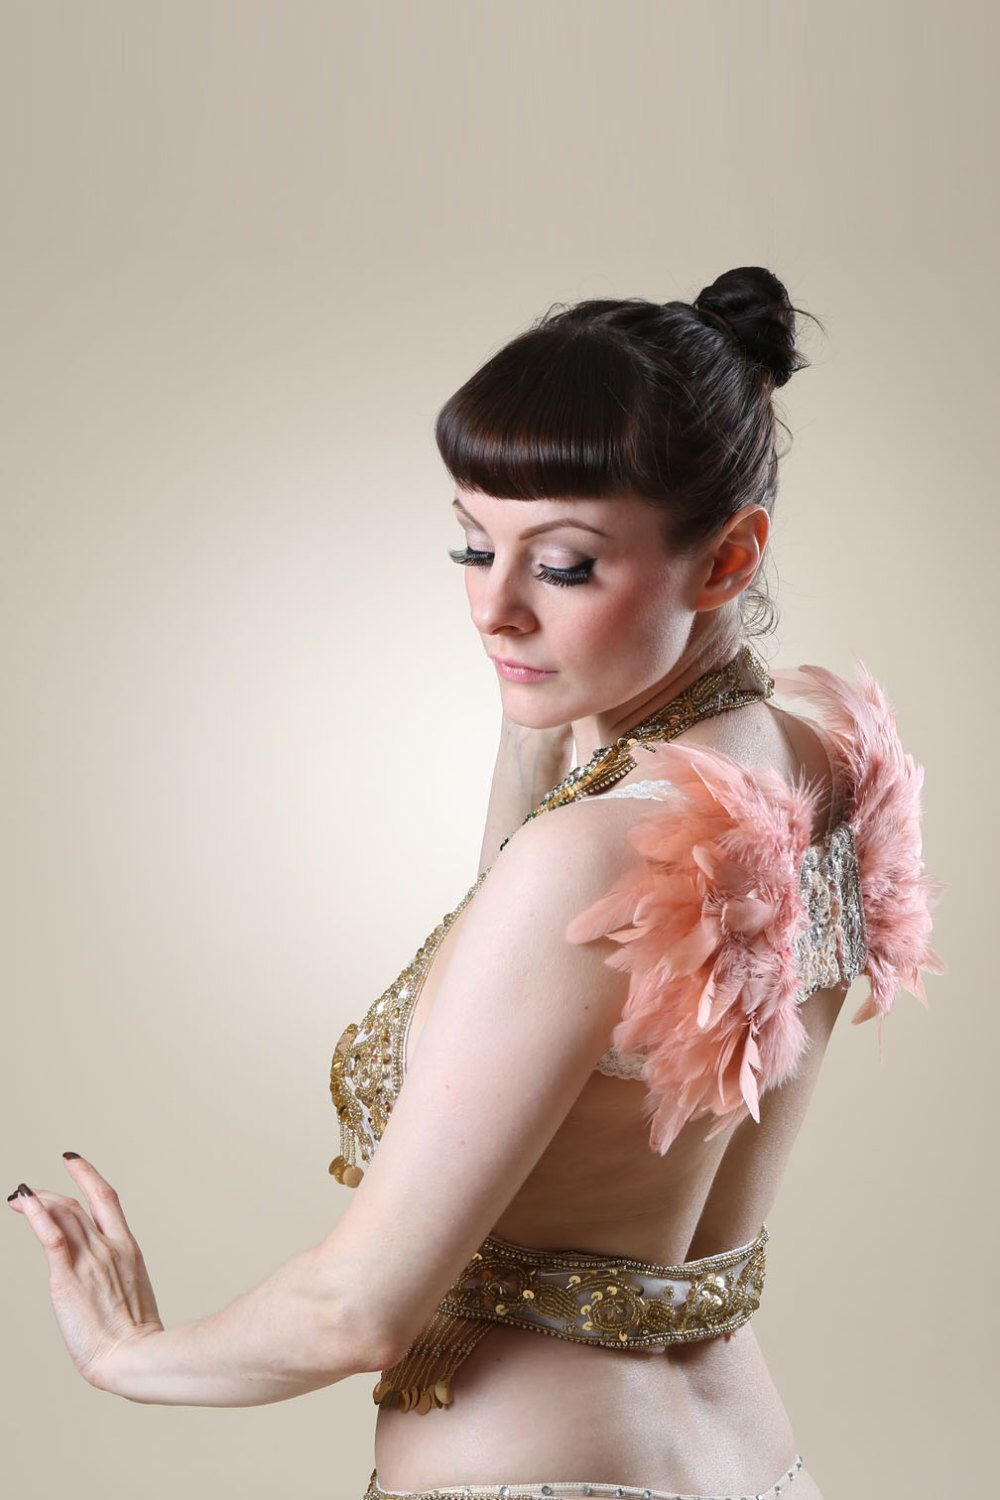 Pink Feather Wings by Talulahblueburlesque on Etsy https://www.etsy.com/dk-en/listing/450259914/pink-feather-wings